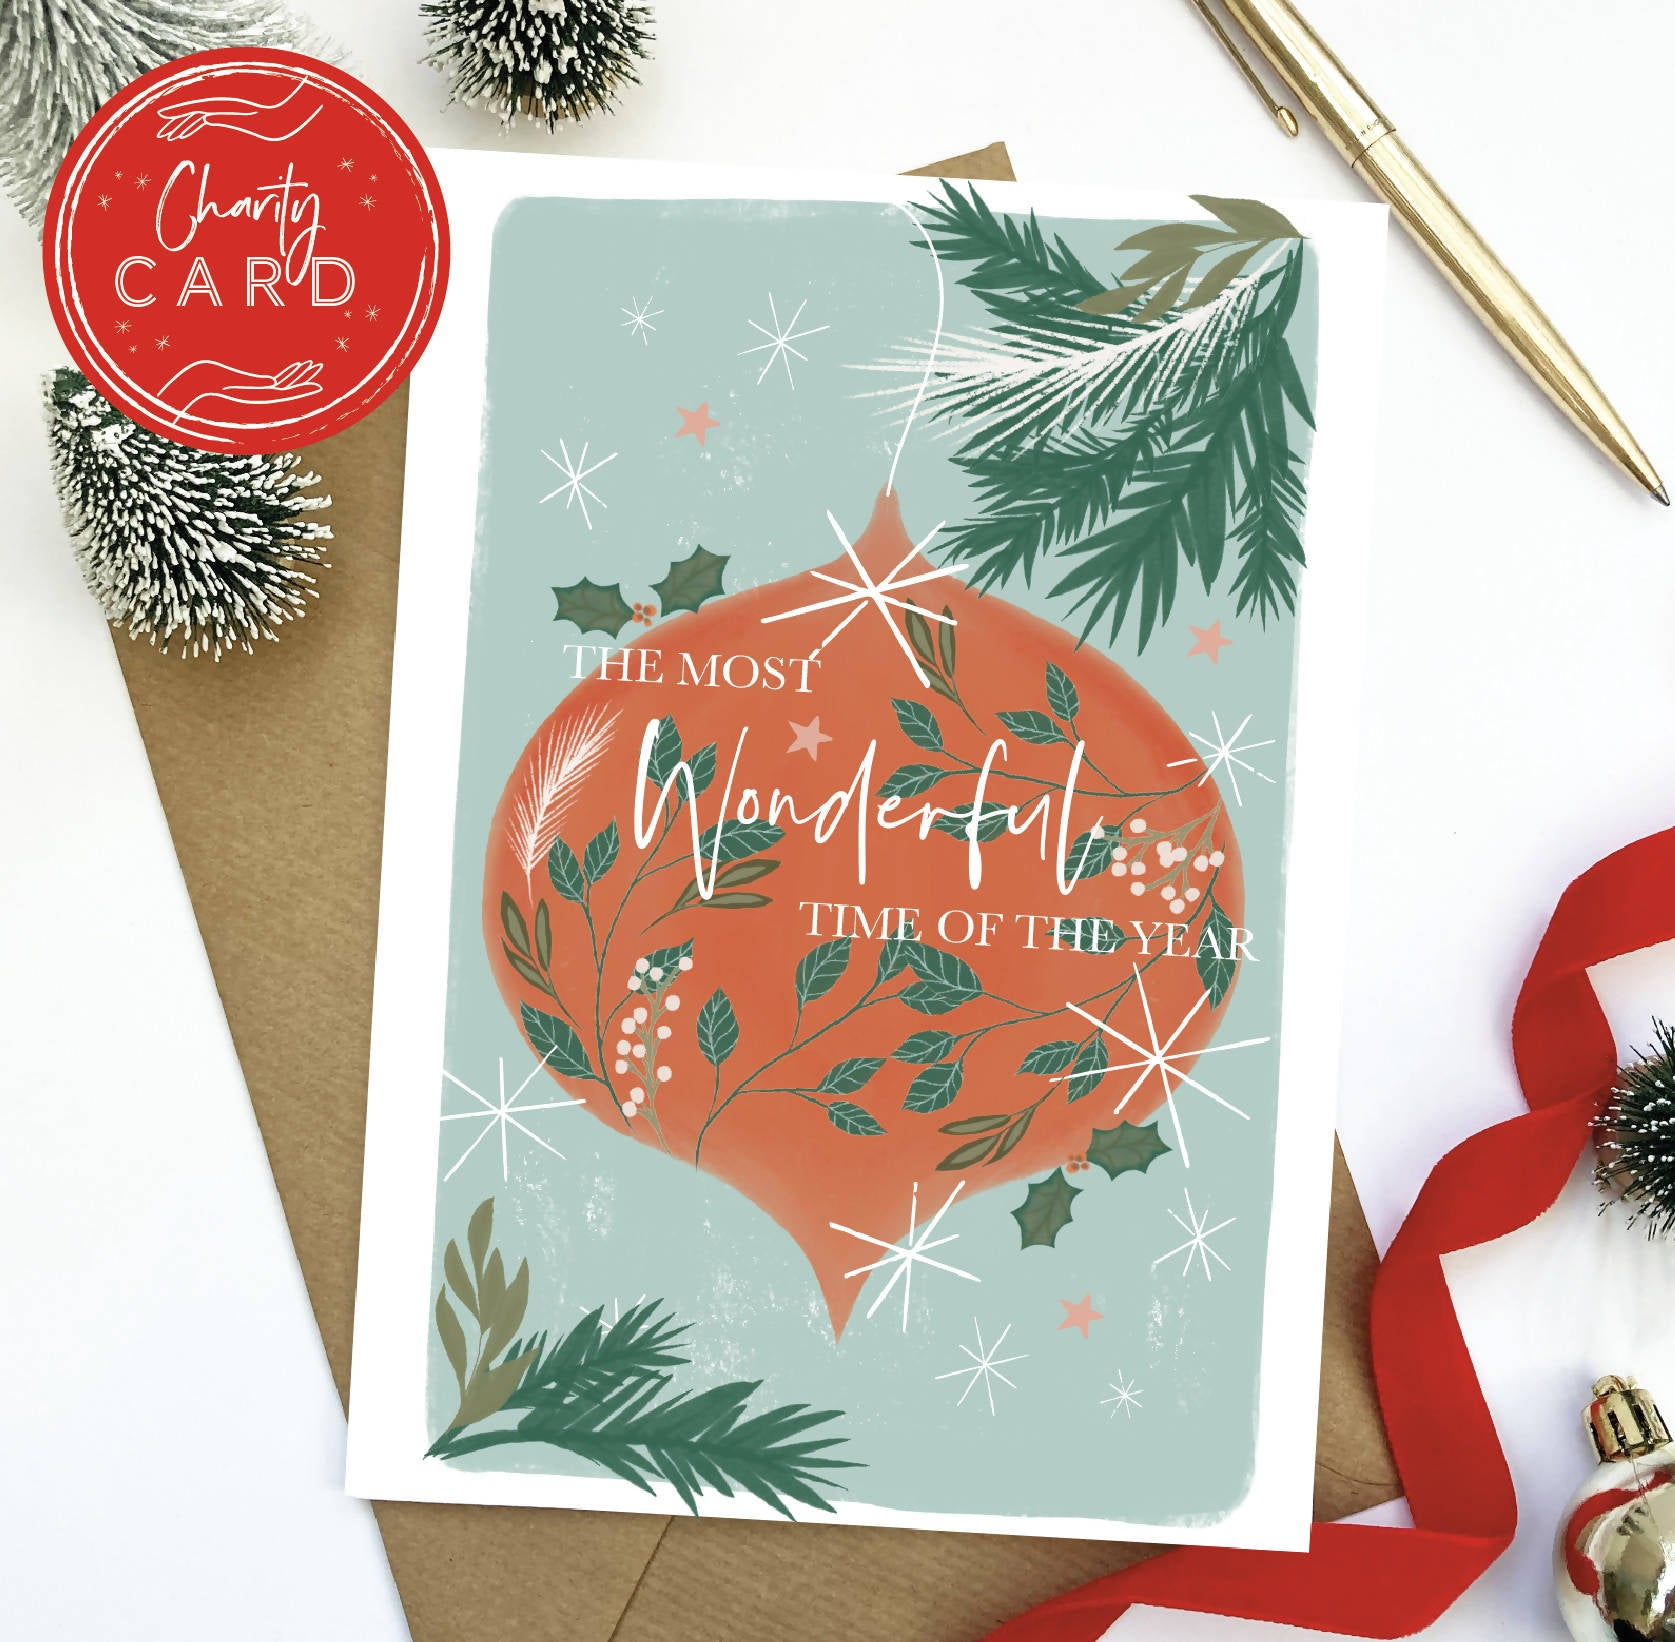 The most Wonderful Time of the Year Christmas Card | Charity Card